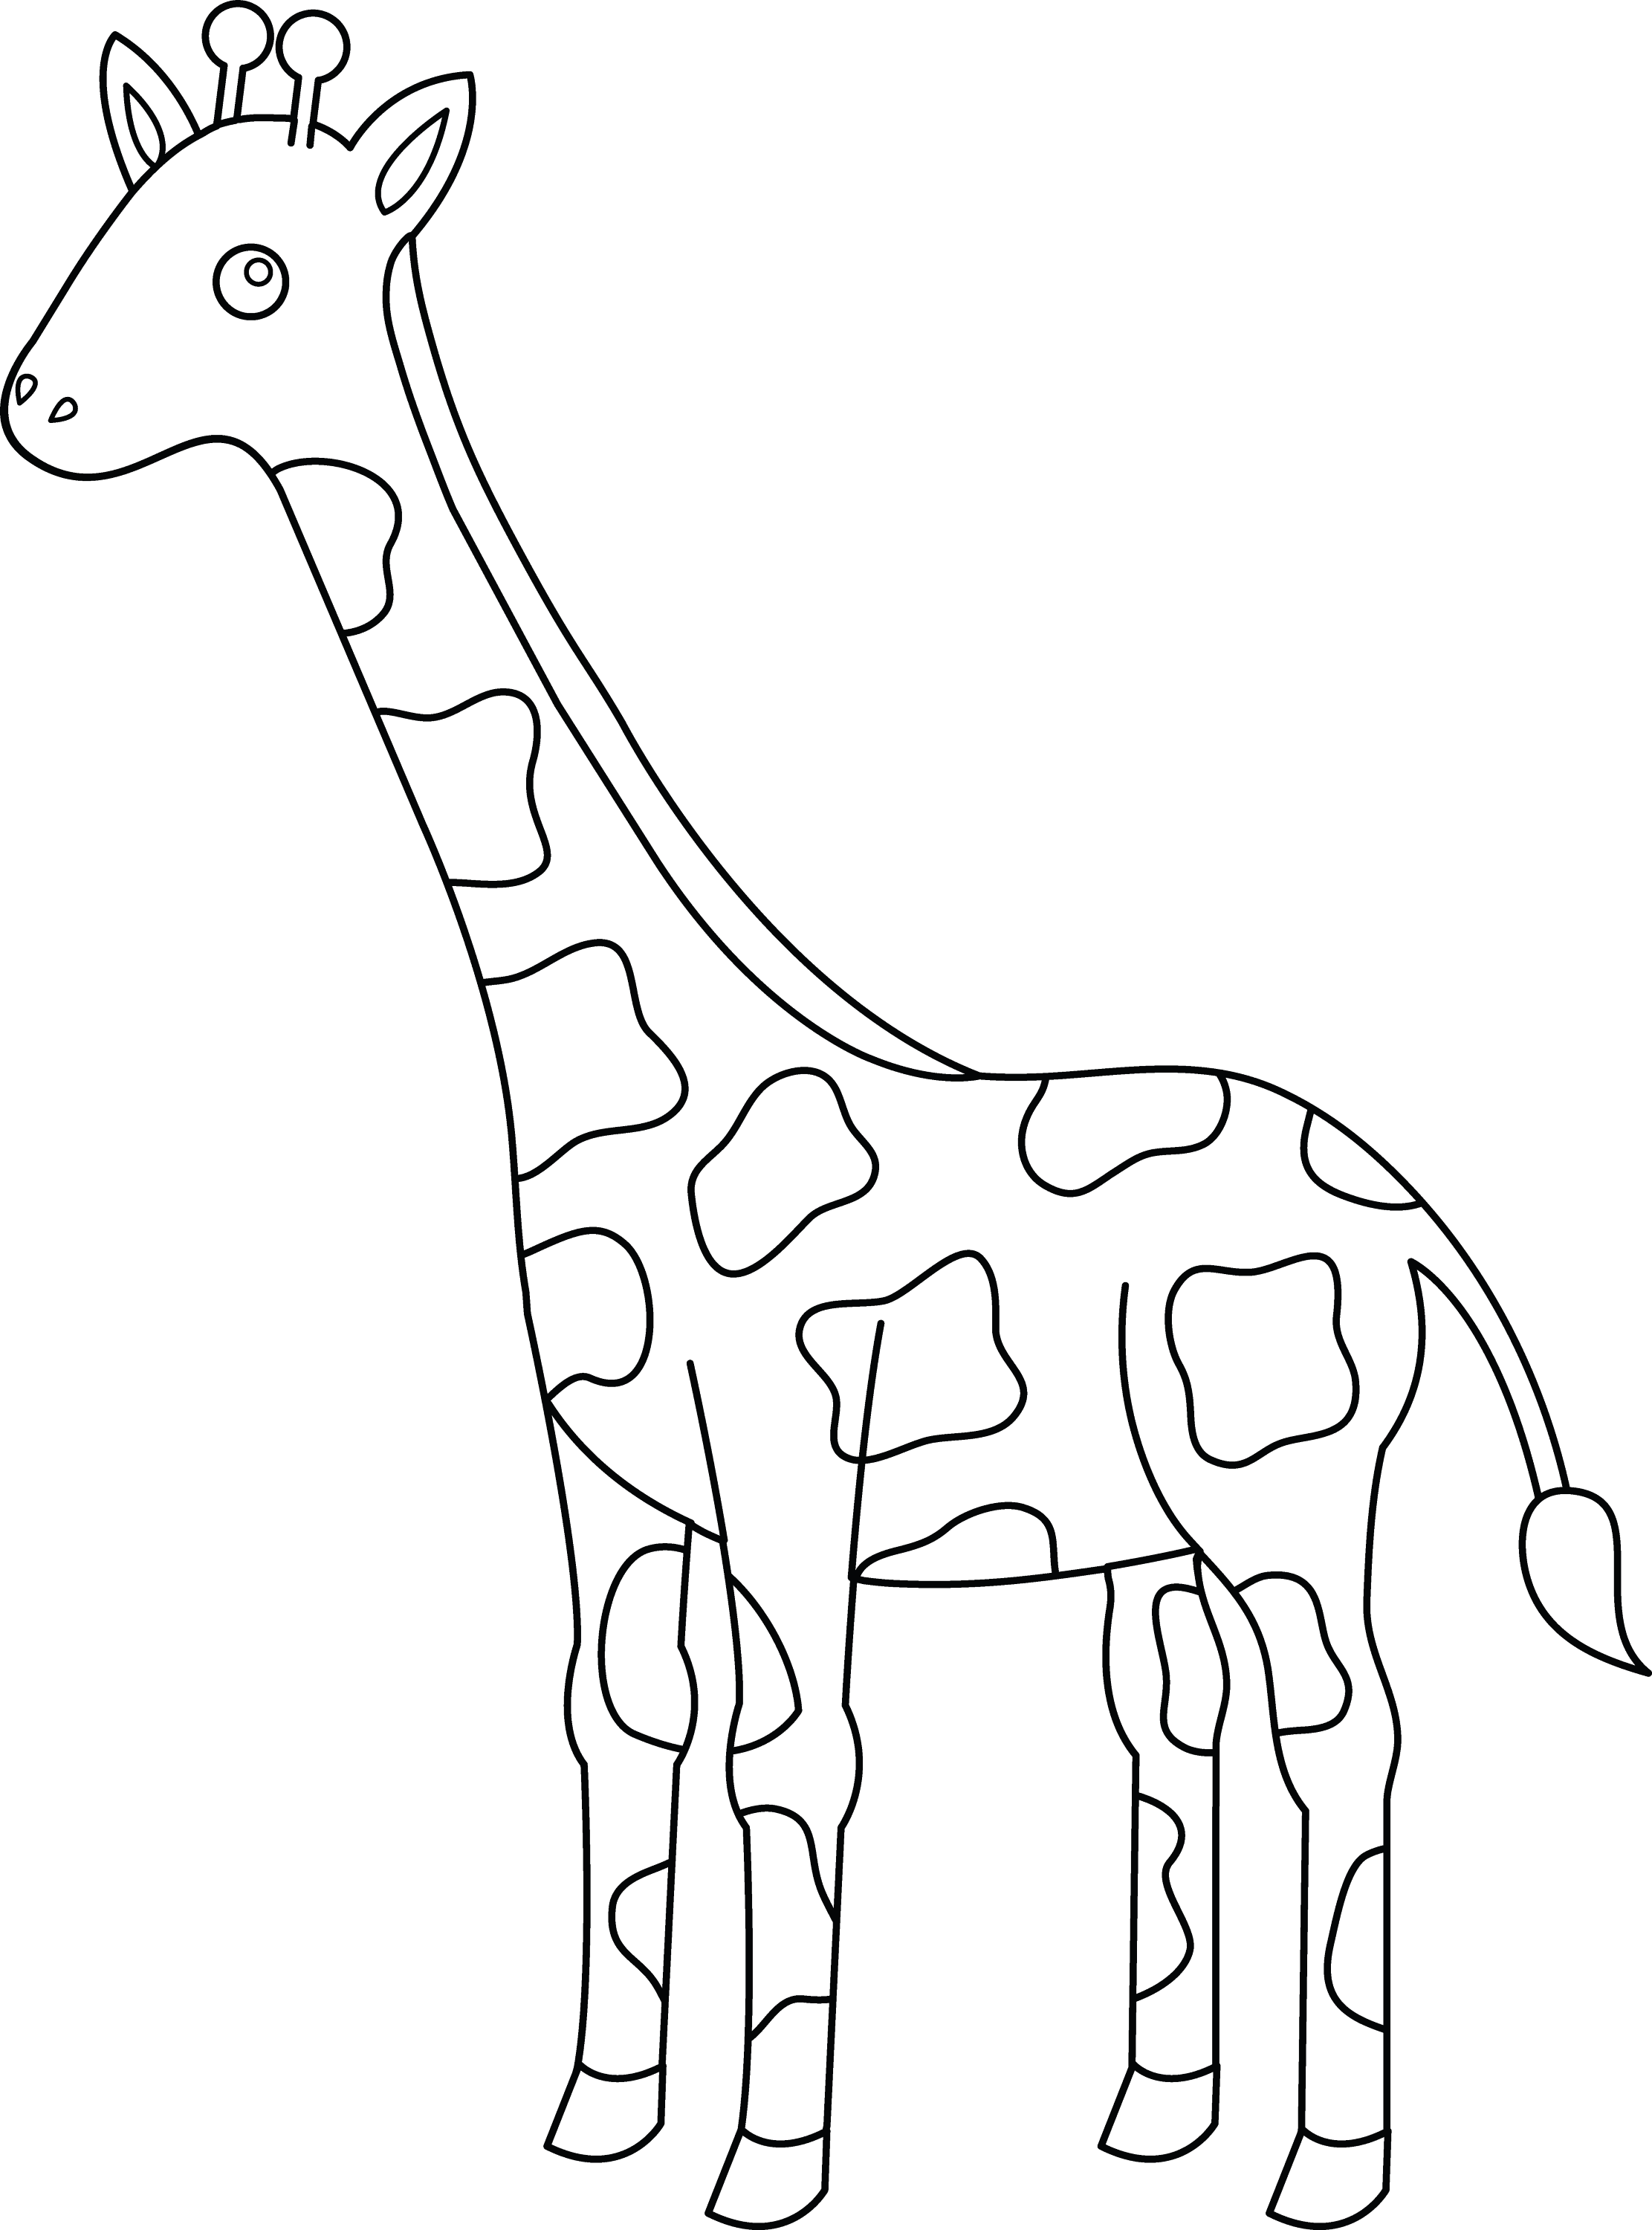 animal outlines to color free giraffe coloring pages animal to outlines color